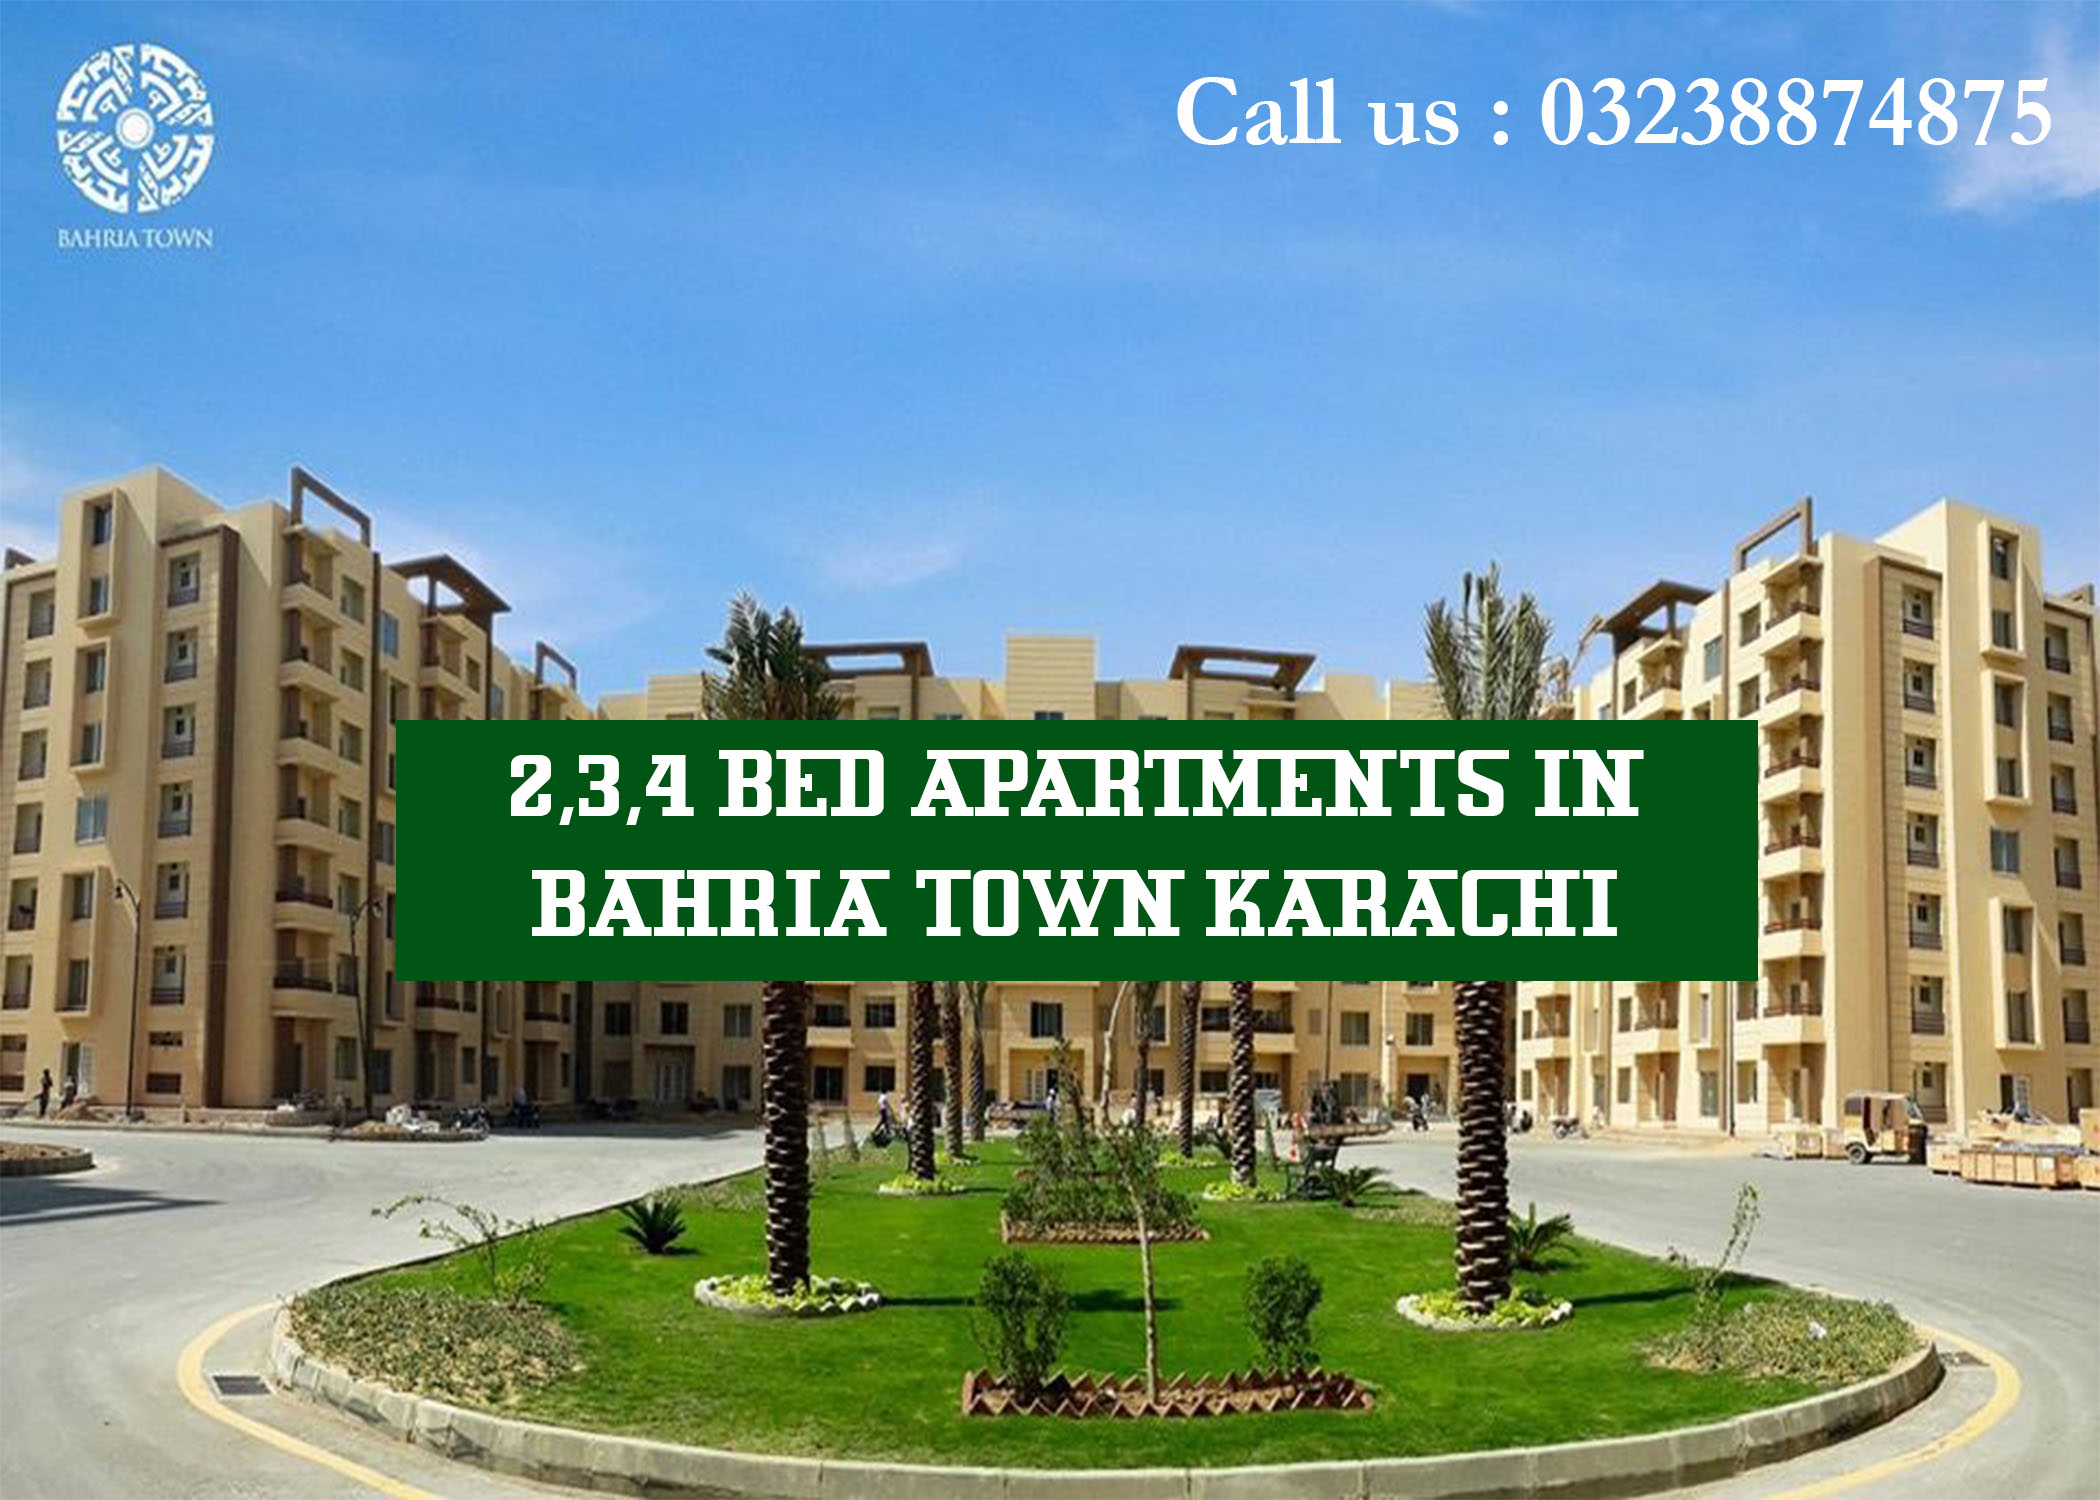 Amazing Opportunity At Extremely Affordable Price 2400 Sq Feet Flat For Sale